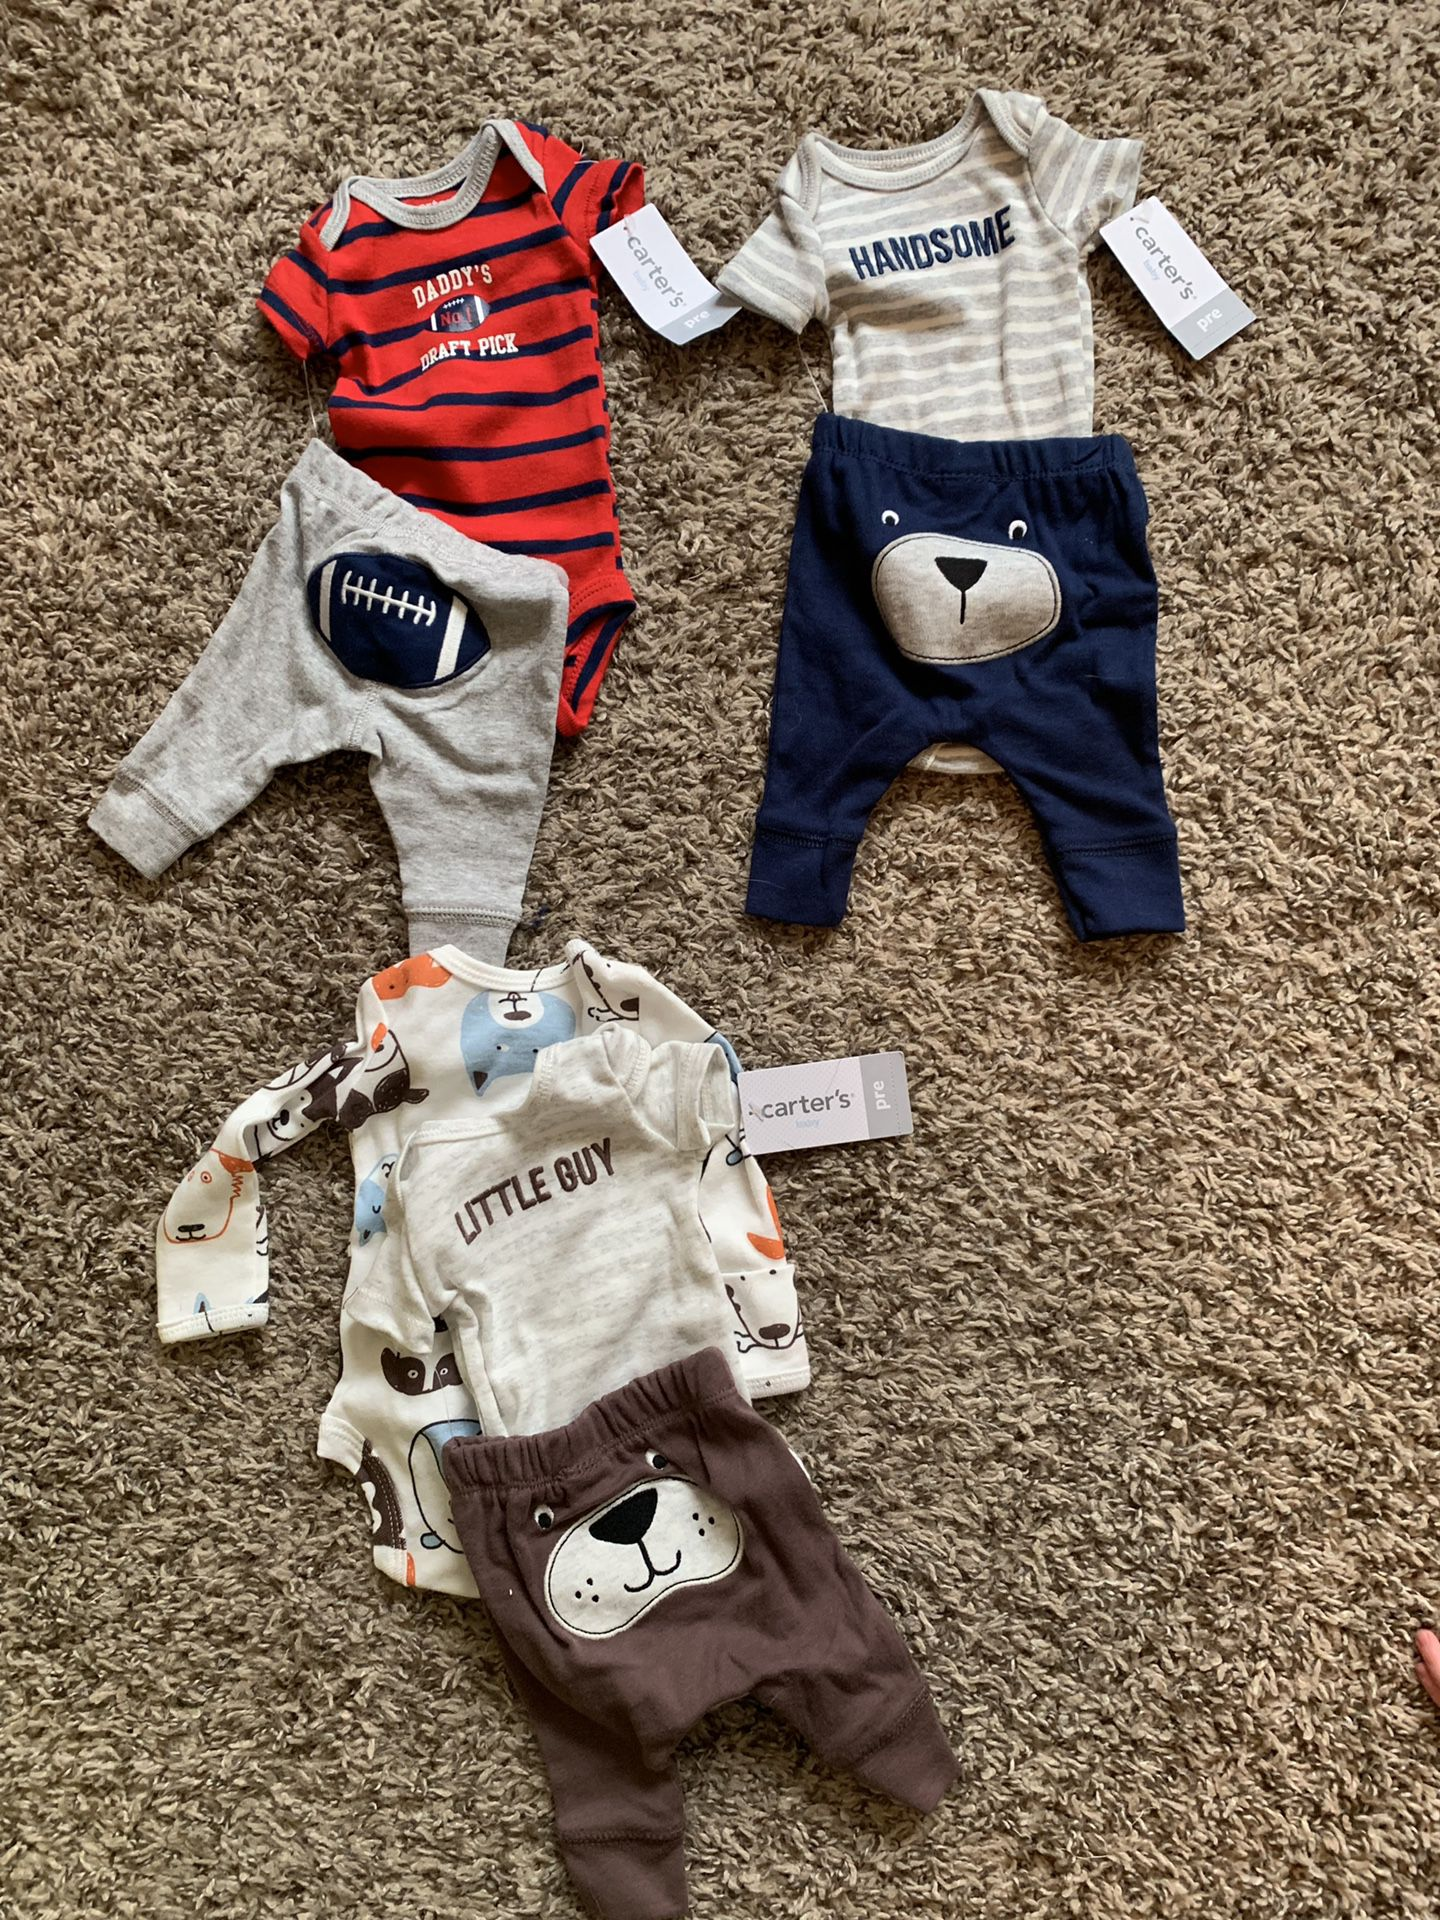 Premi baby outfits tags still on!